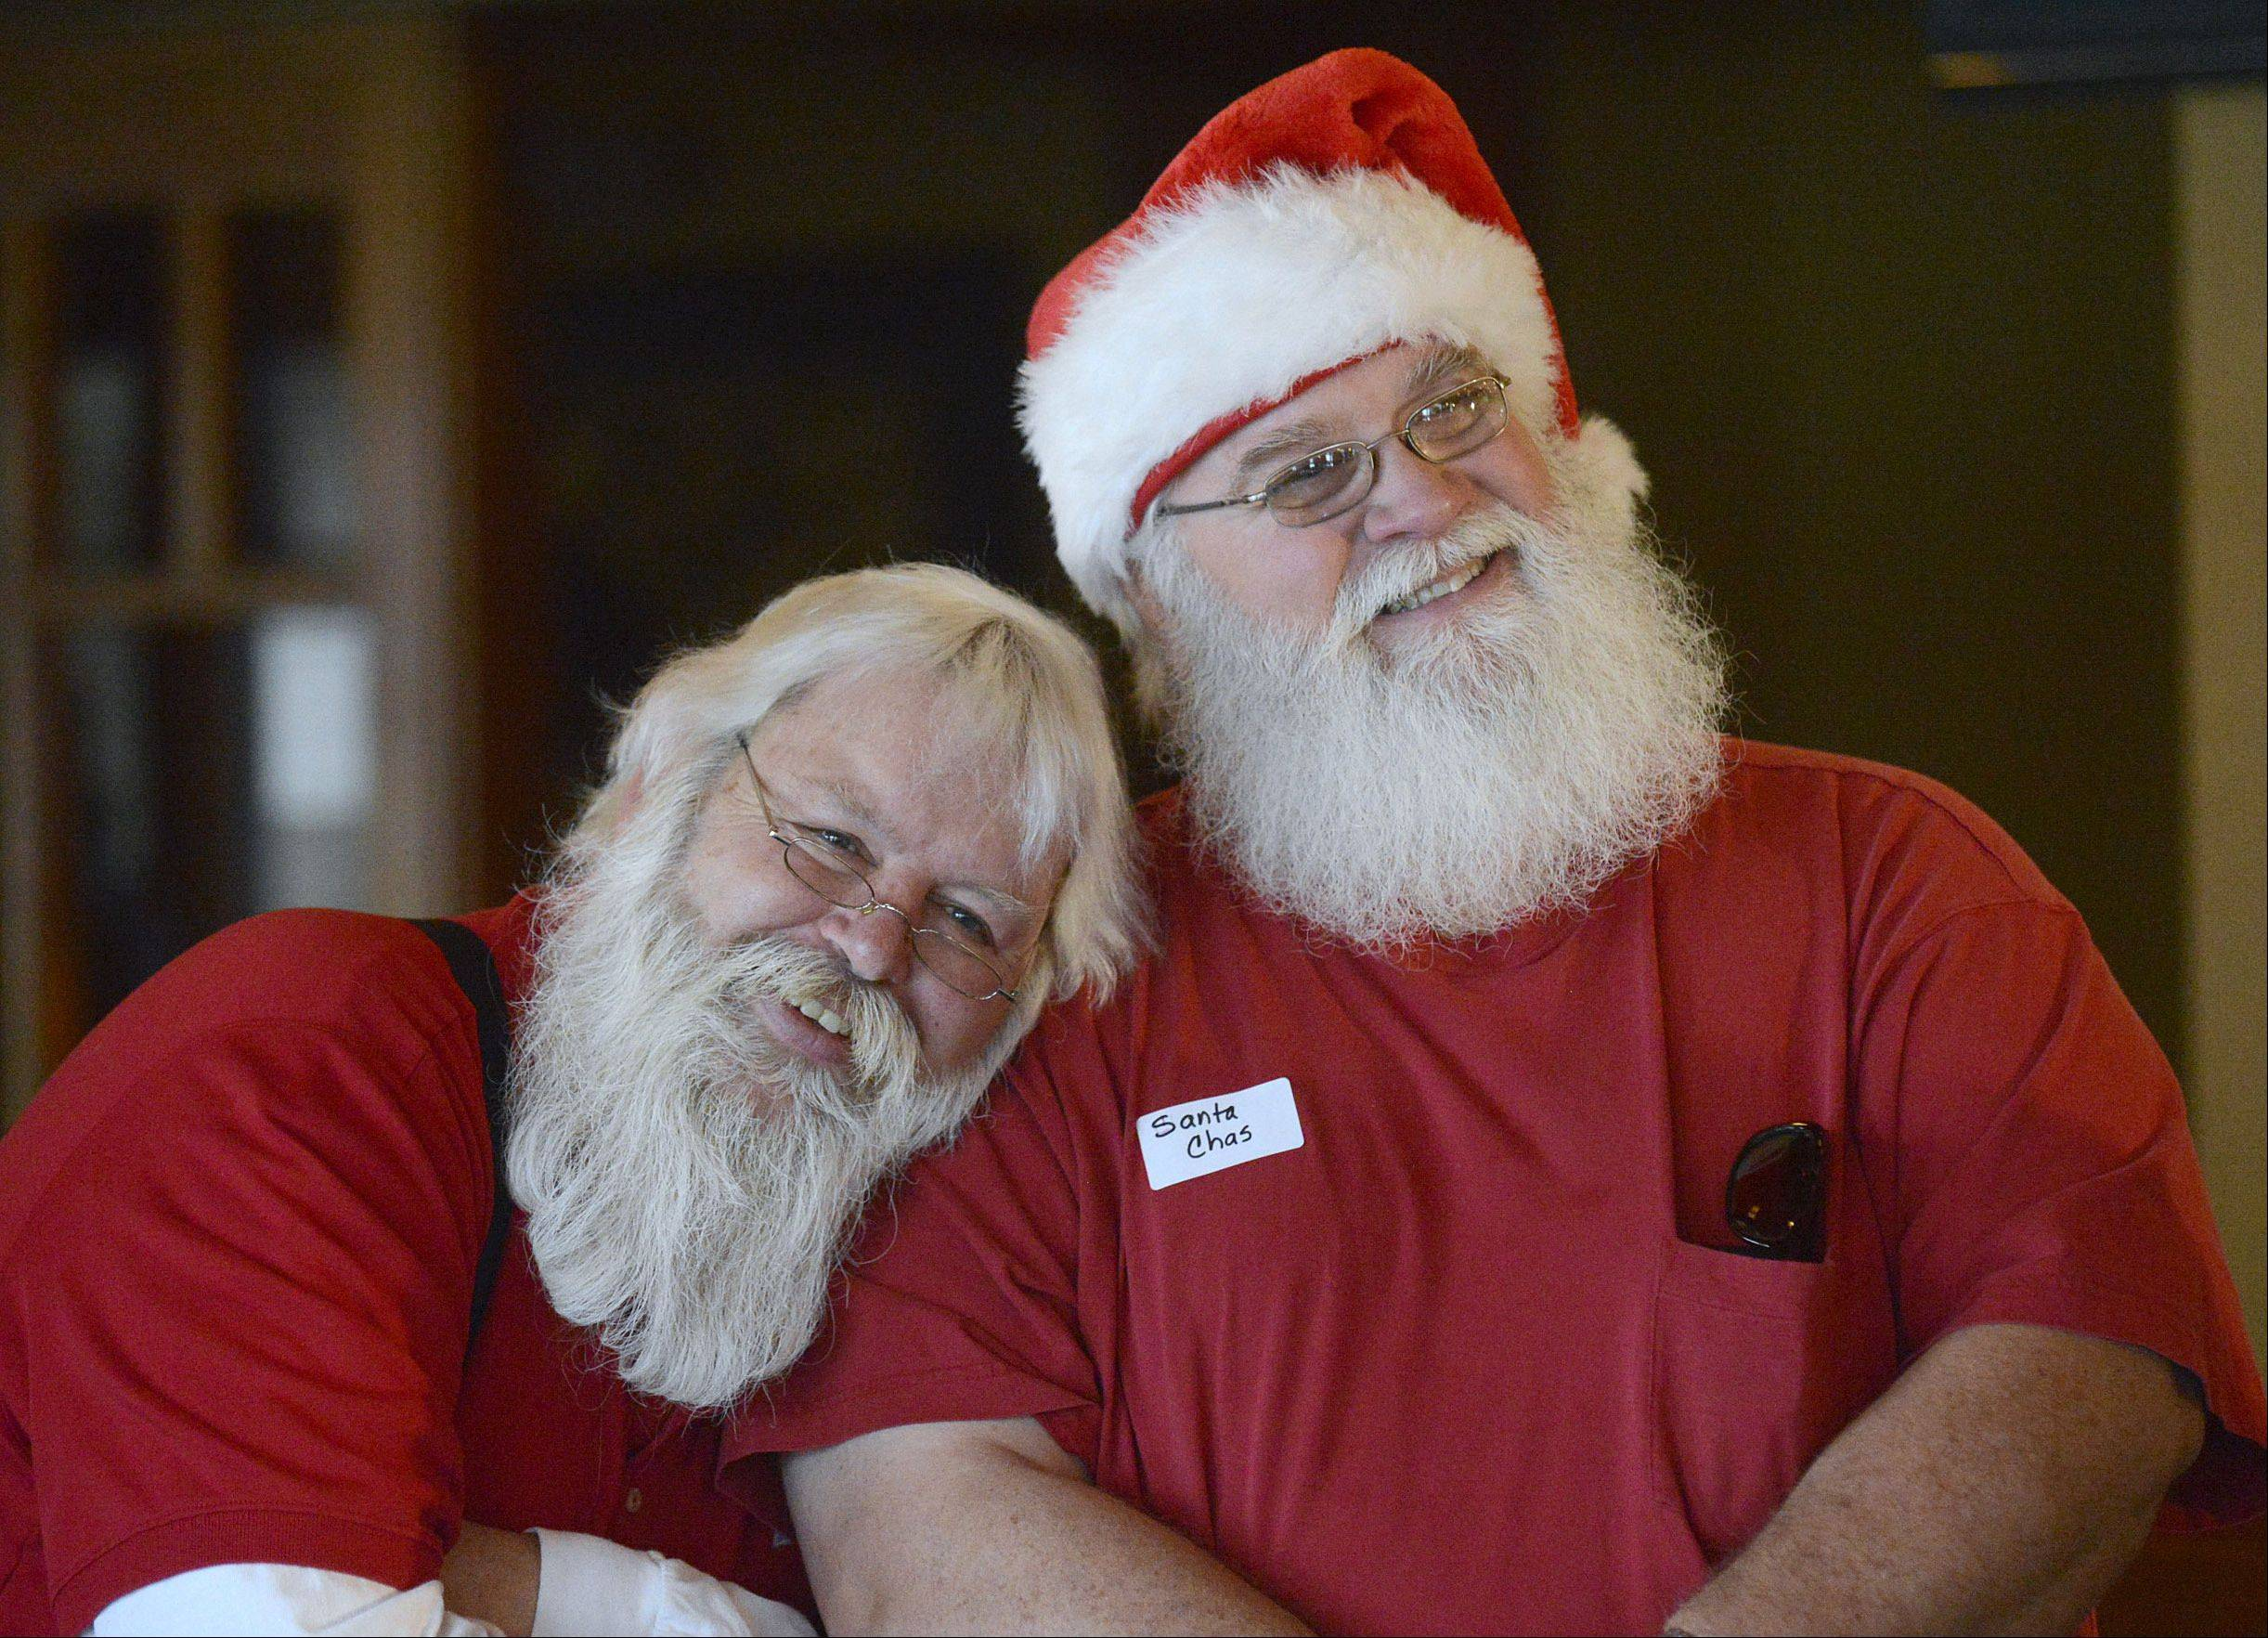 Jeff Curtis, left, of Bartlett and Charlie Miehle of Carol Stream pose for photos at a gathering of Santas and Mrs. Santas from around Illinois Saturday in Aurora.